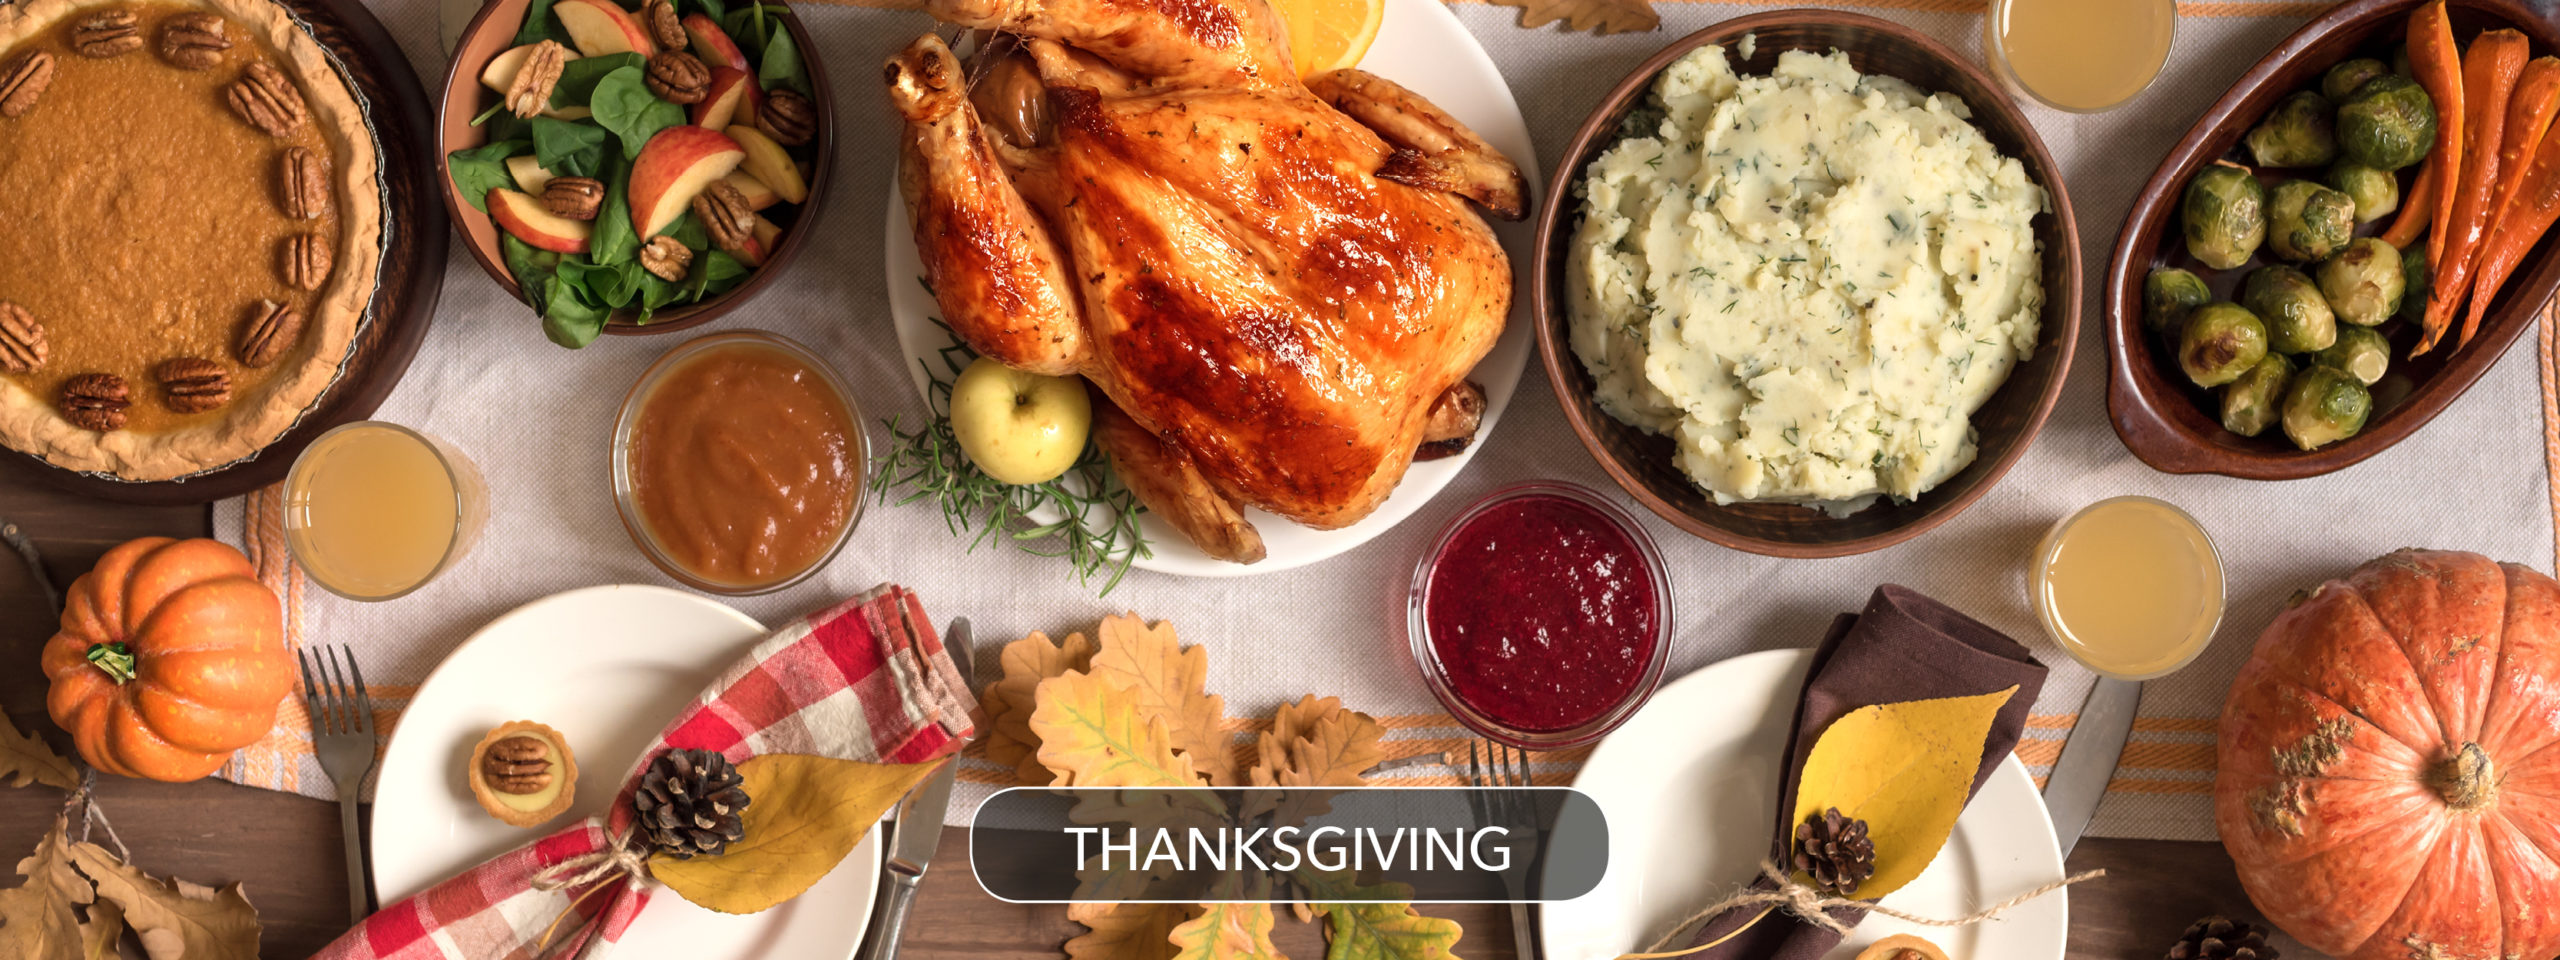 Click Image to view Thanksgiving Page